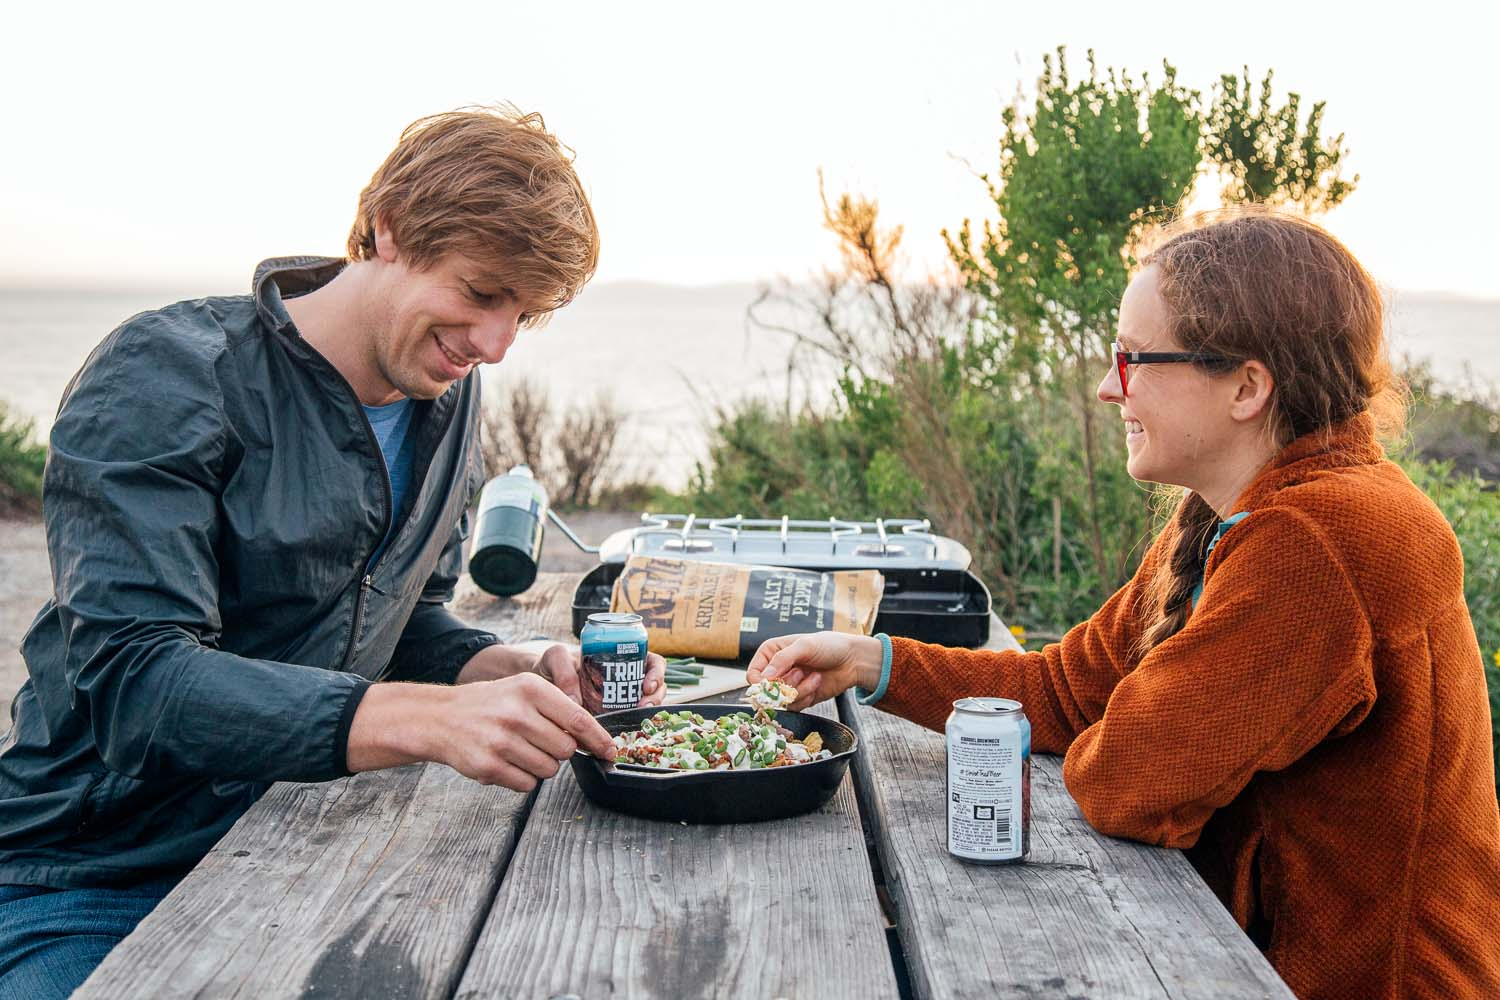 Man and woman sitting at a picnic table sharing a plate of nachos at a camp site with bushes in the background.